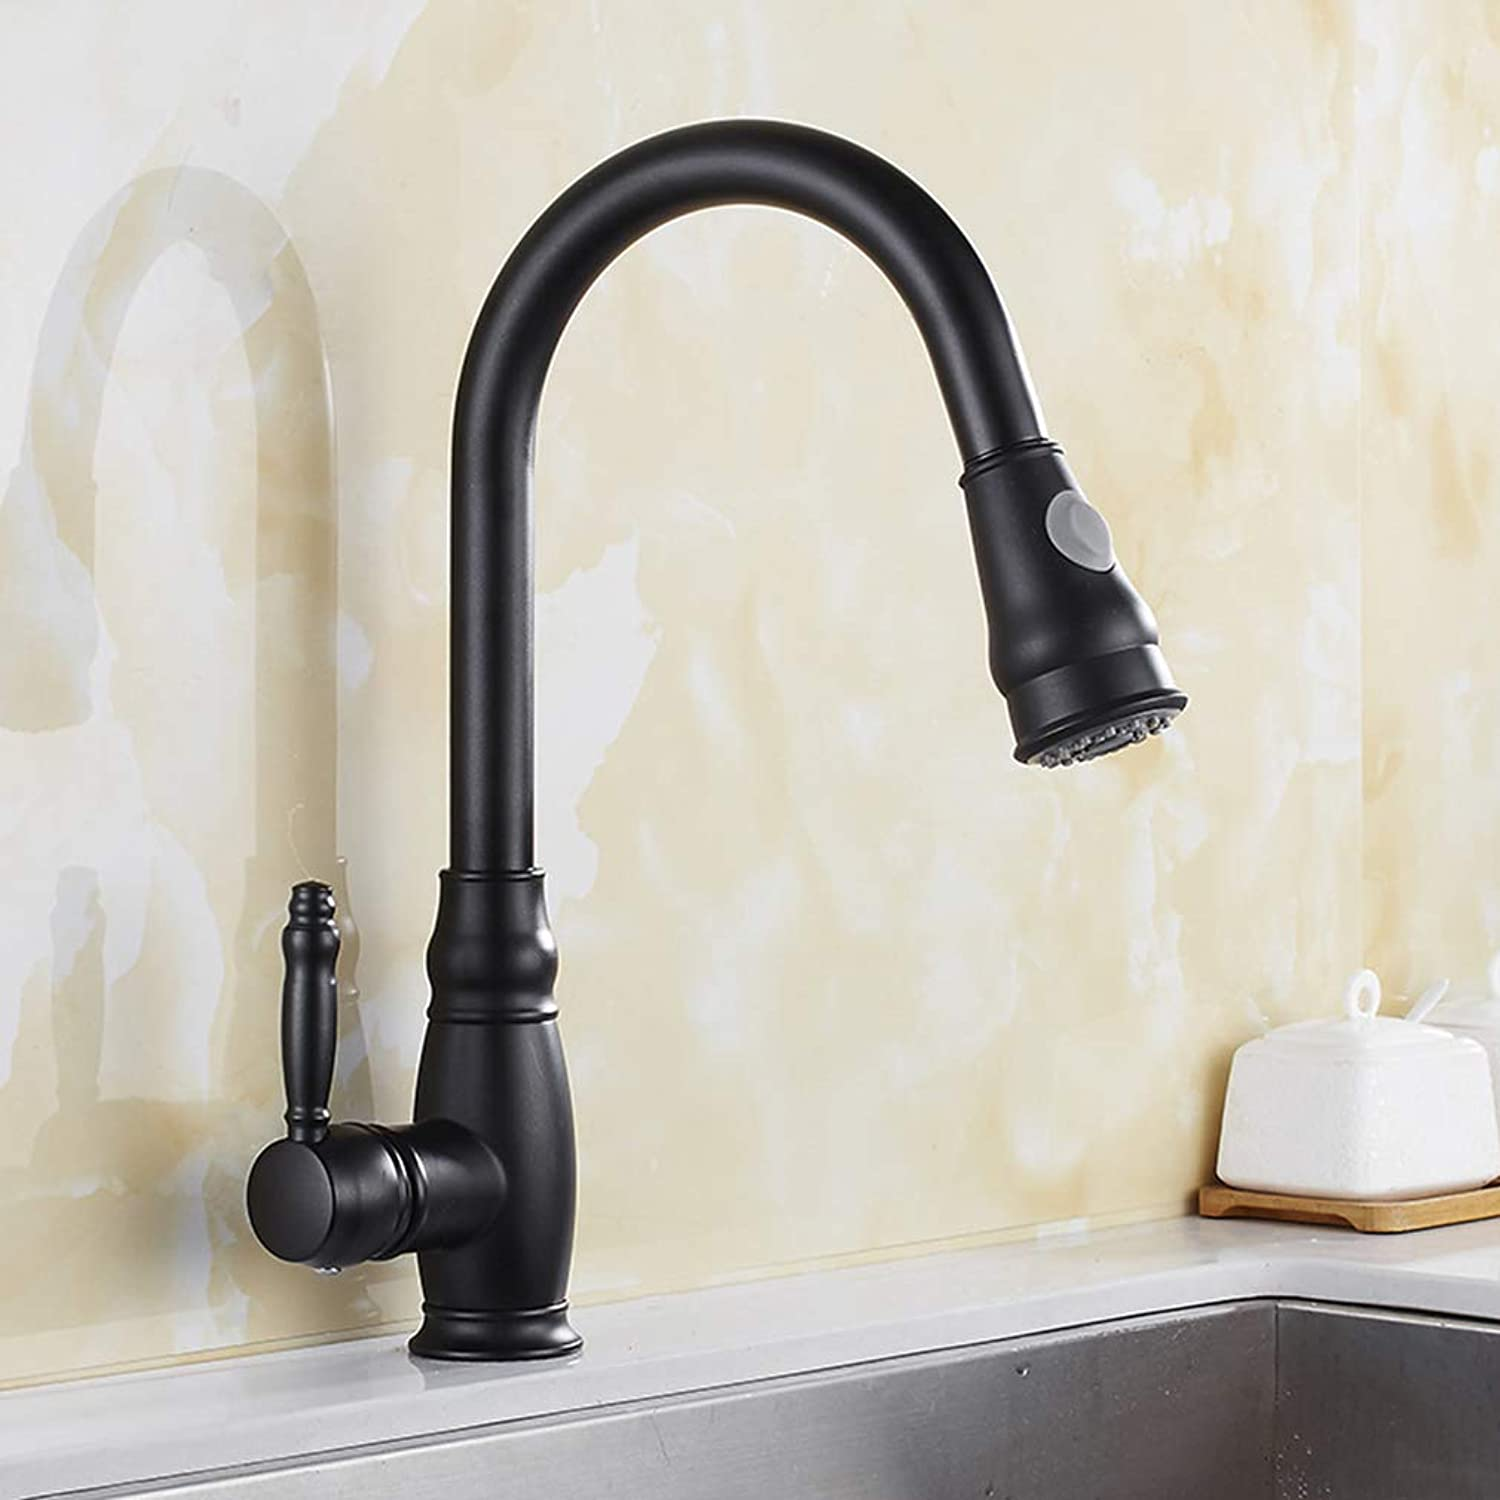 QJIAXING Küchenschaufeln Pull Out Out schwarz Paint Single Handle Hot and Cold Water Mixer Faucet